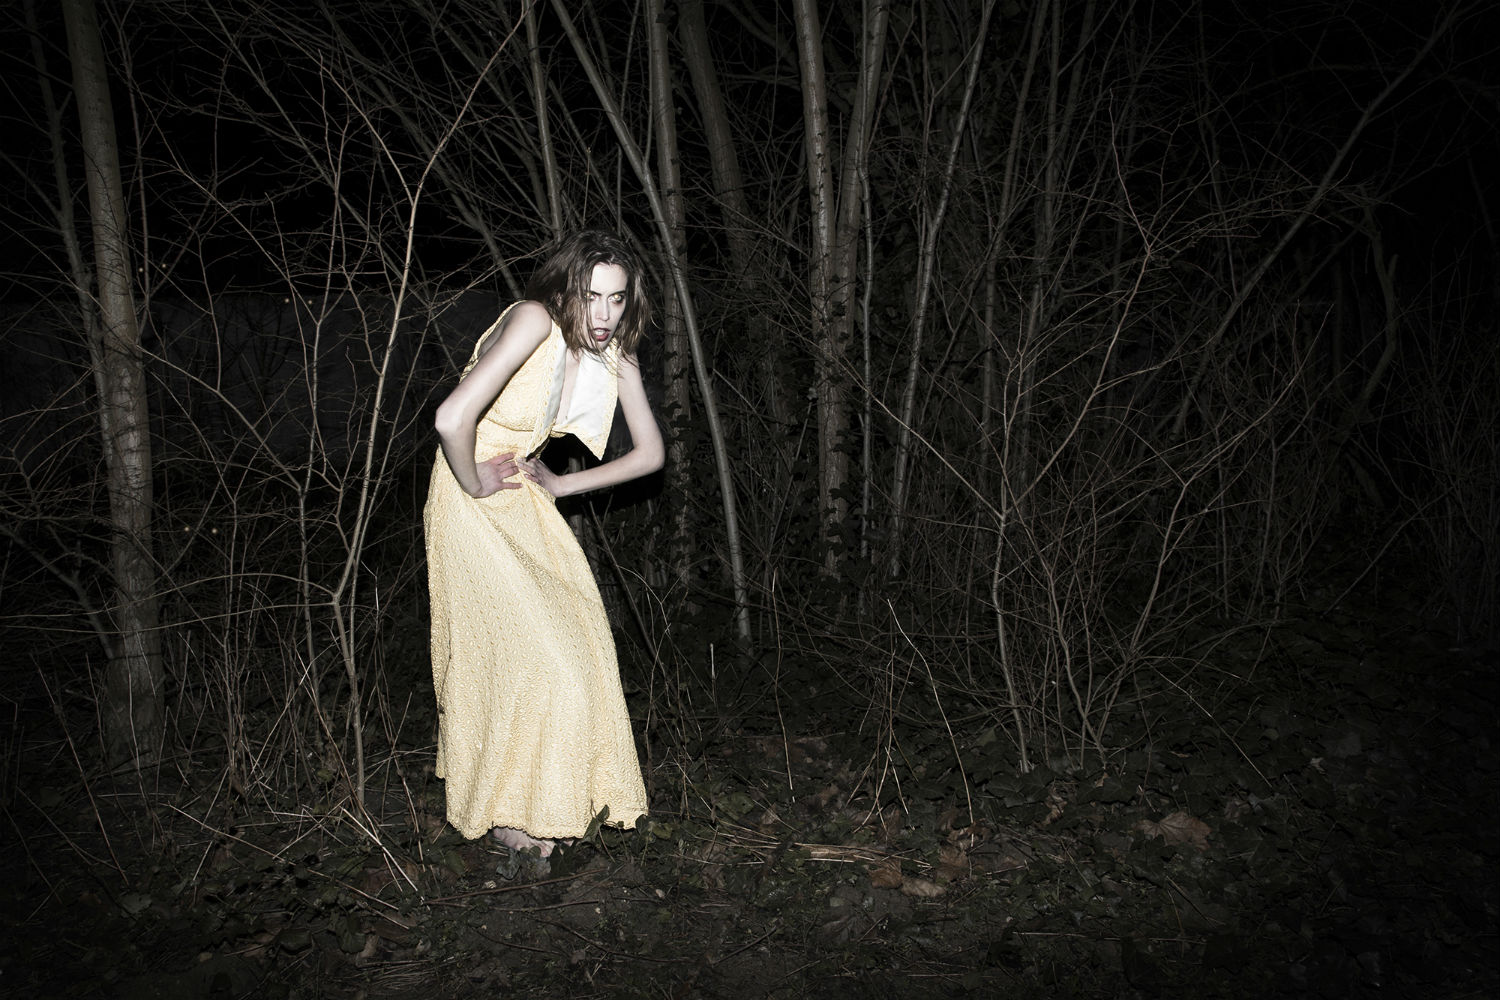 coline gascon fashion photography darkness woods